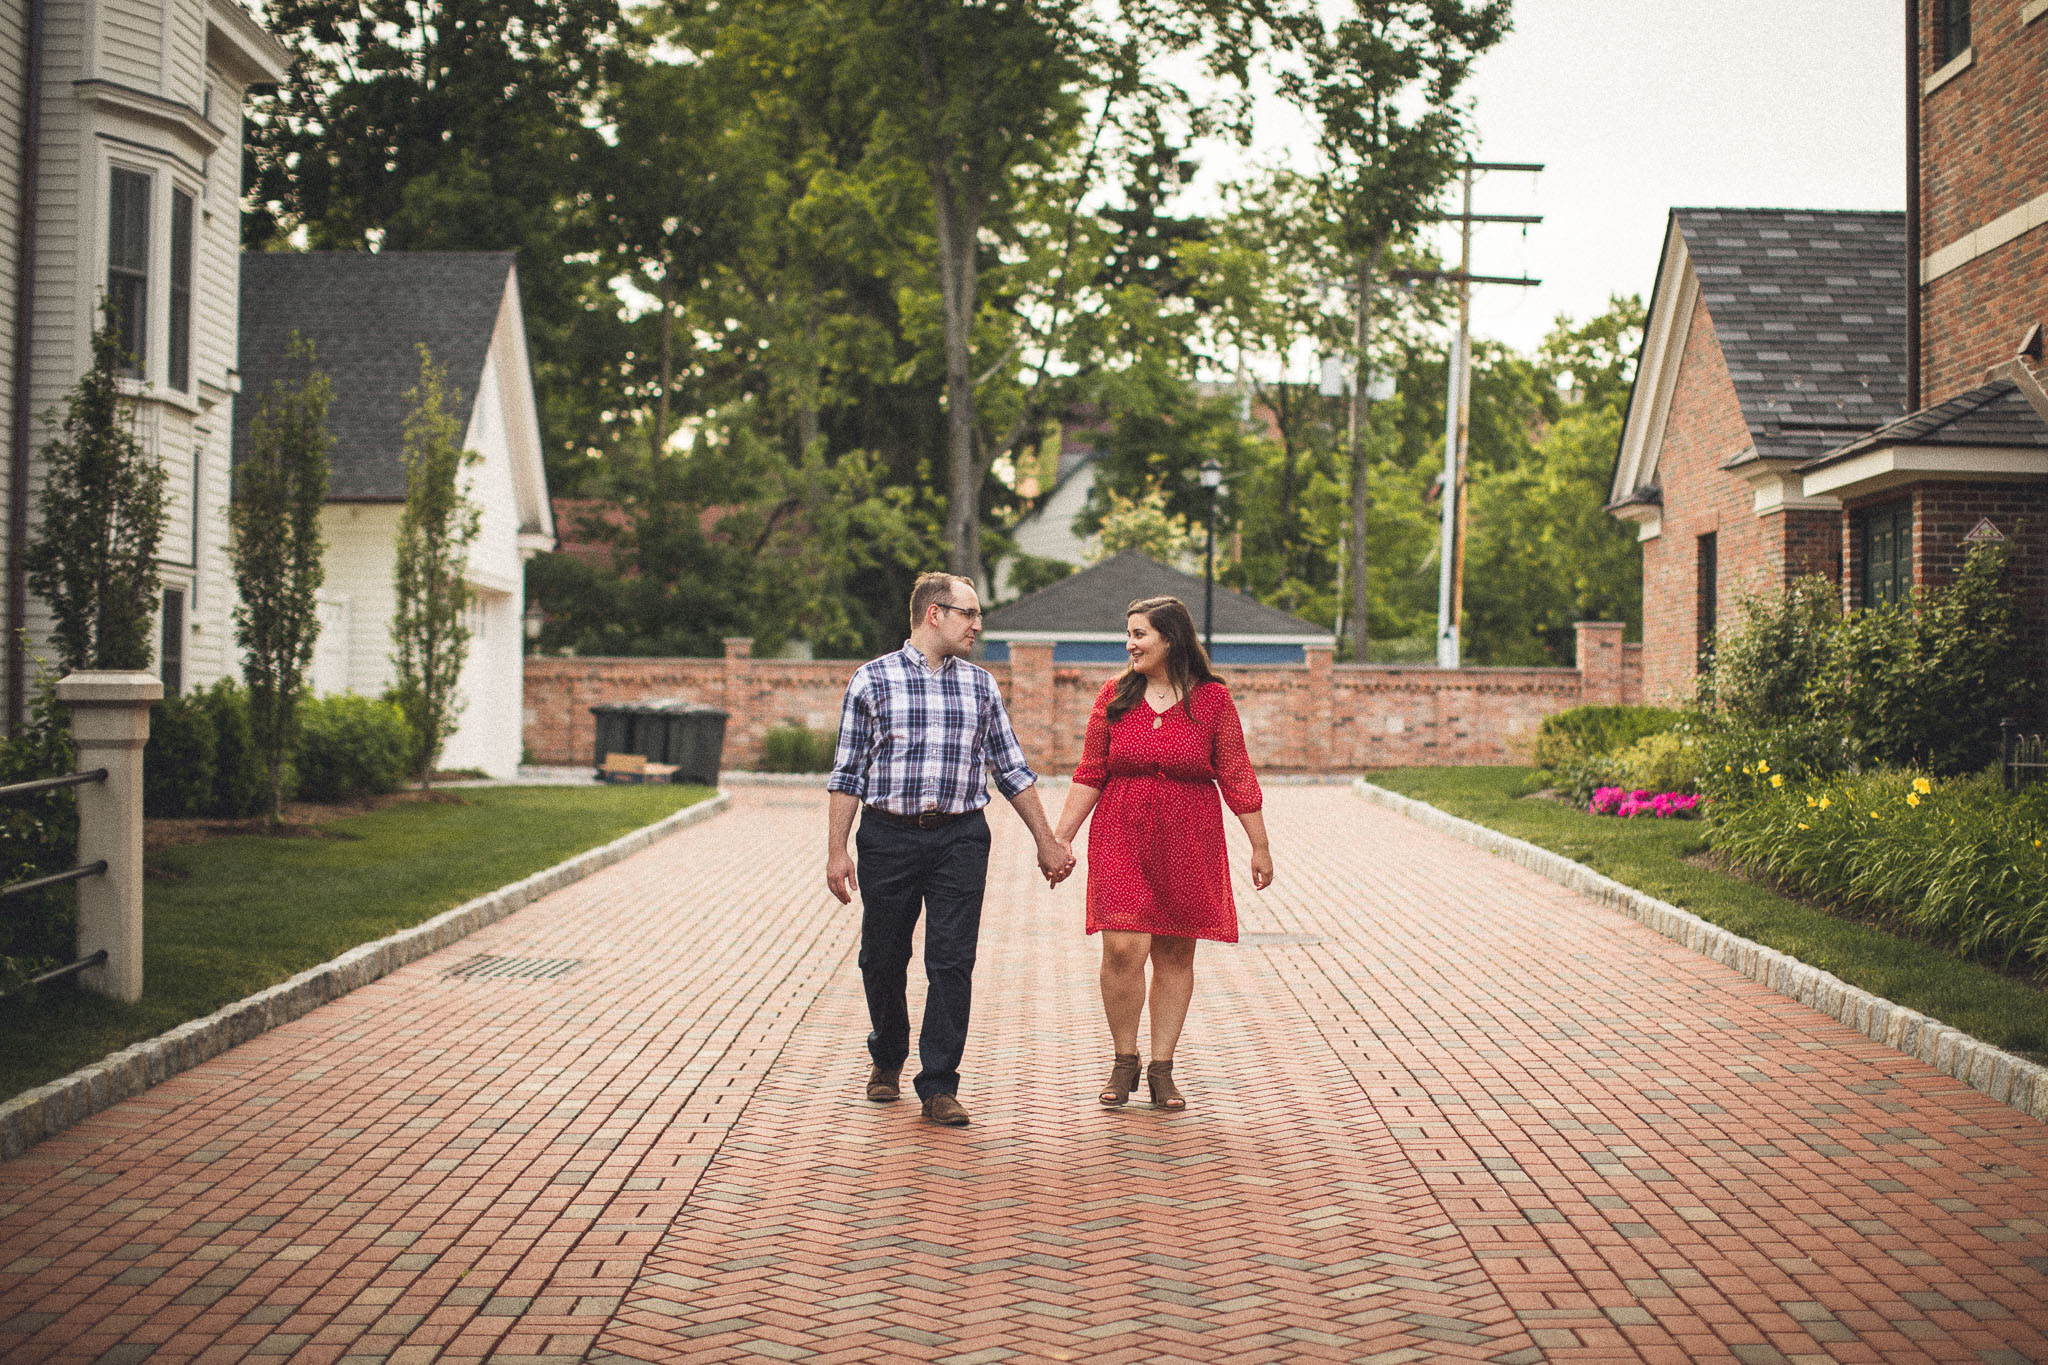 Brick Road Engagement Photography